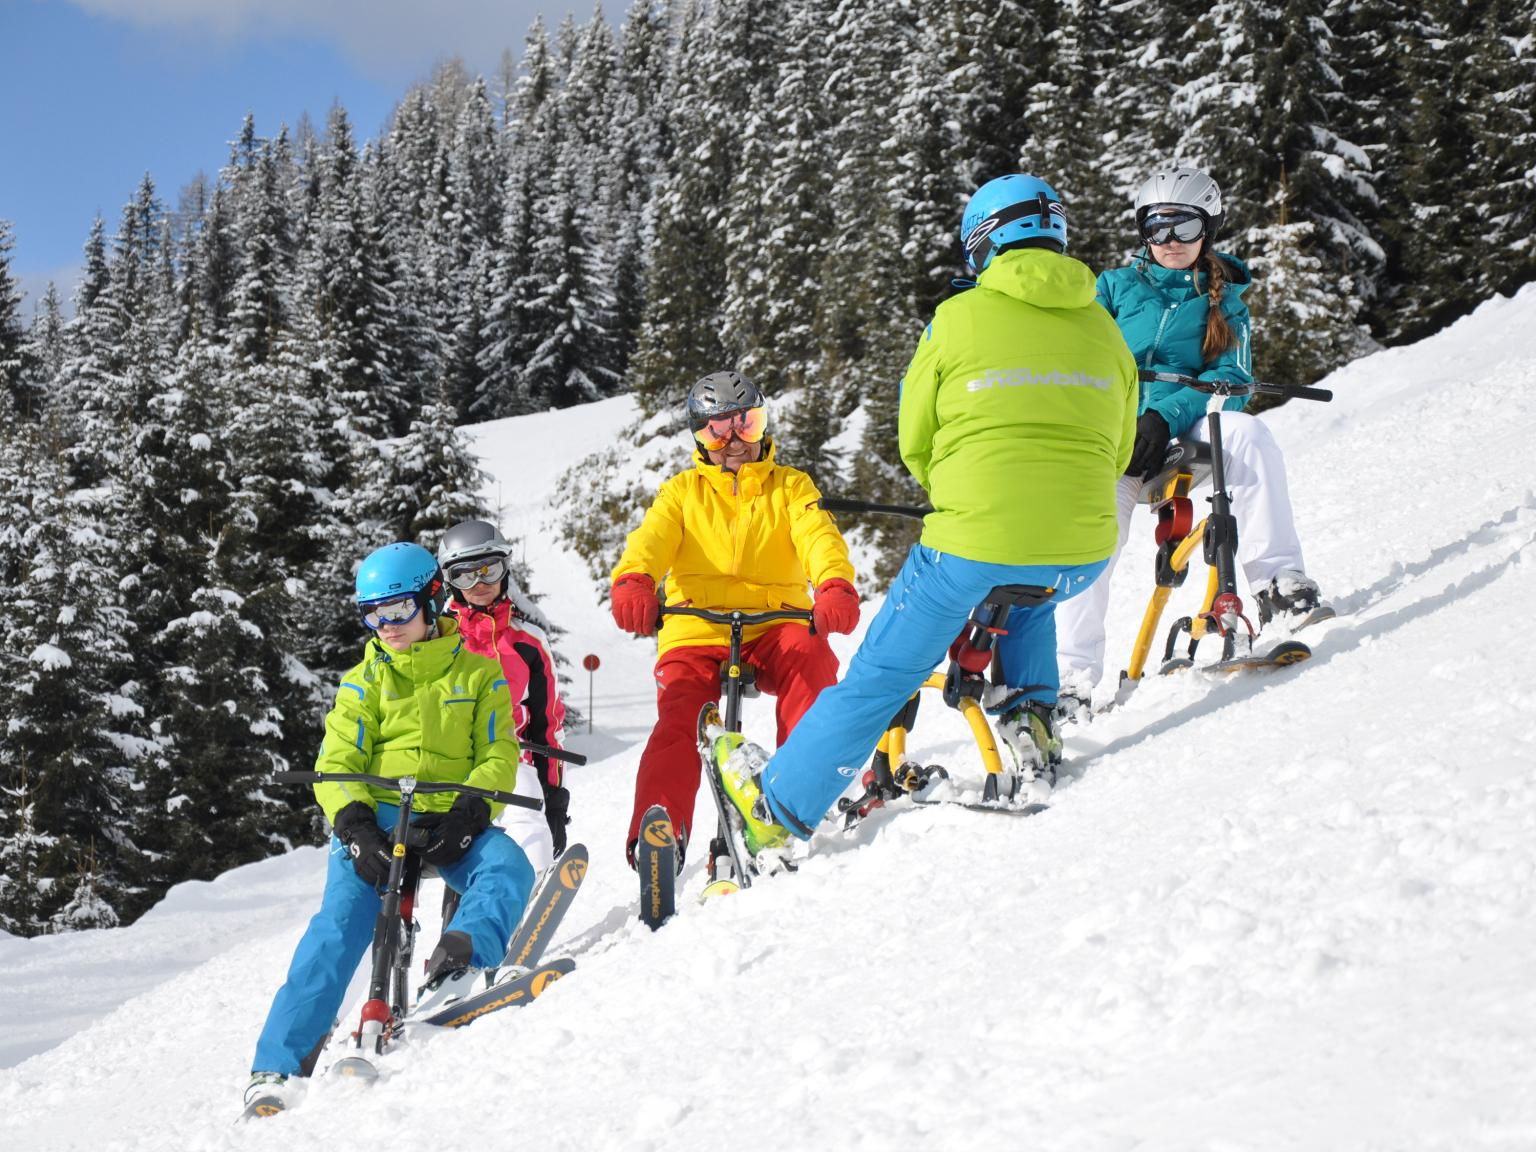 Sun Peaks Snow Bikes, Ski-Bobs, ski-bikes for Downhill Thrills (photo Sun Peaks Resort)